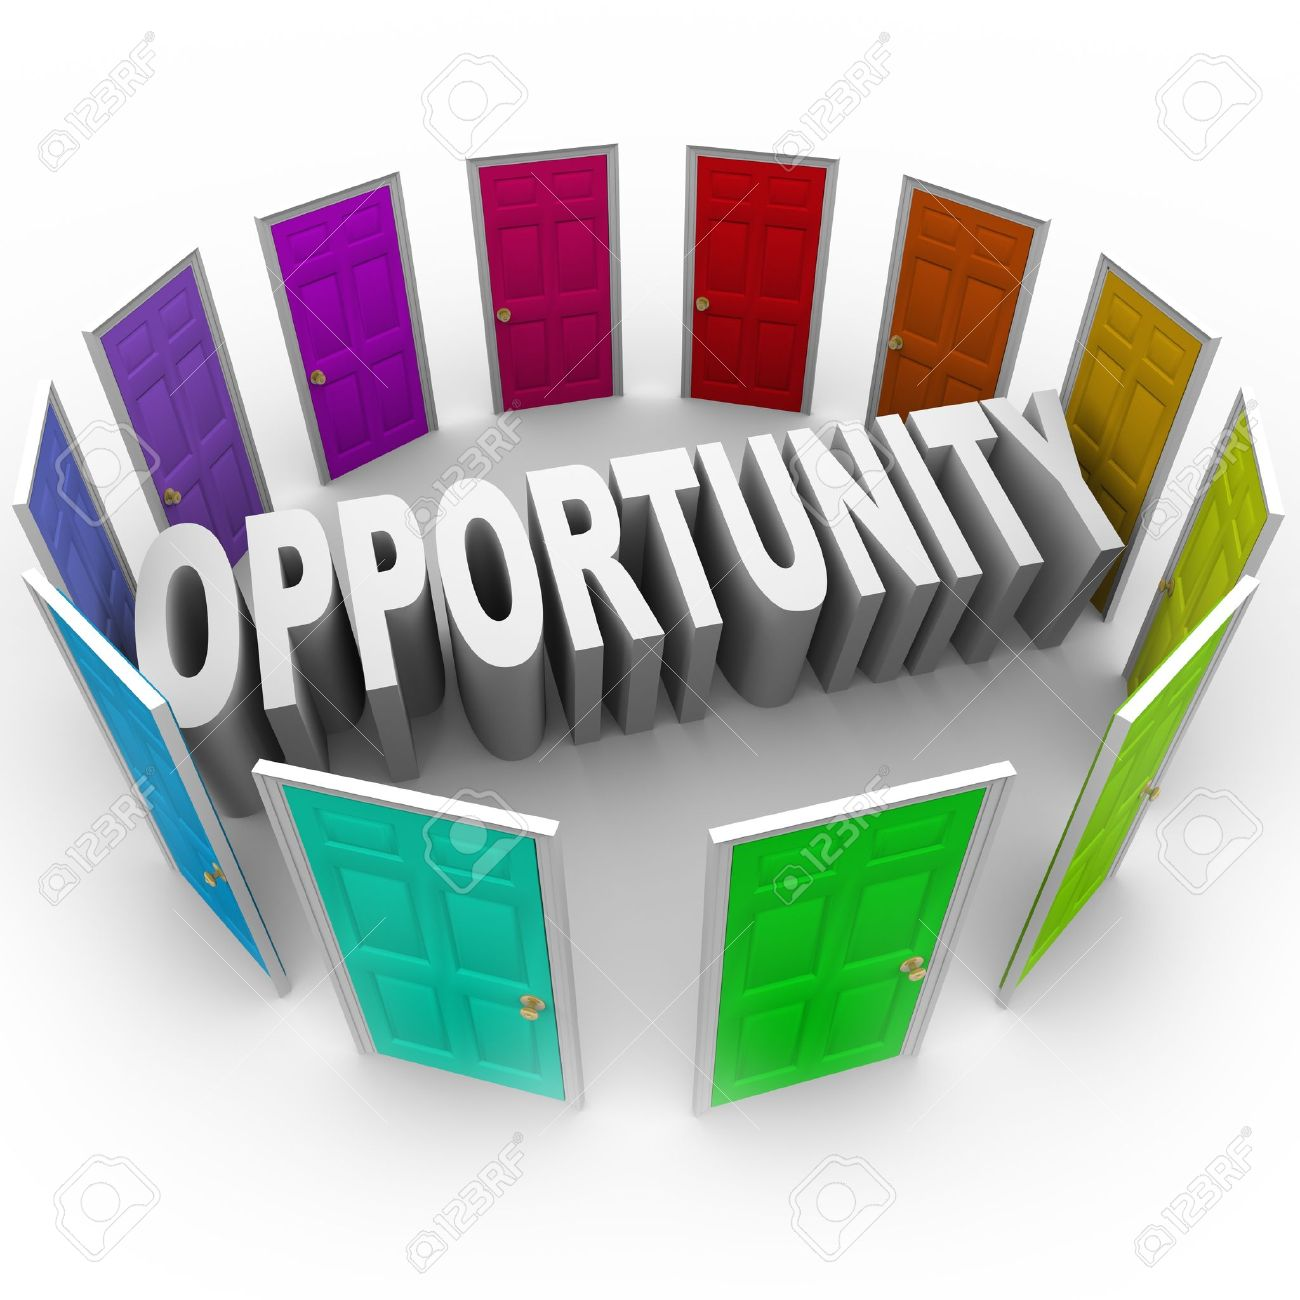 The word Opportunity in 3D letters surrounded by doors of different colors to illustrate a chance for a new career, path, fortune, or big break in your job or life Stock Photo - 19421088